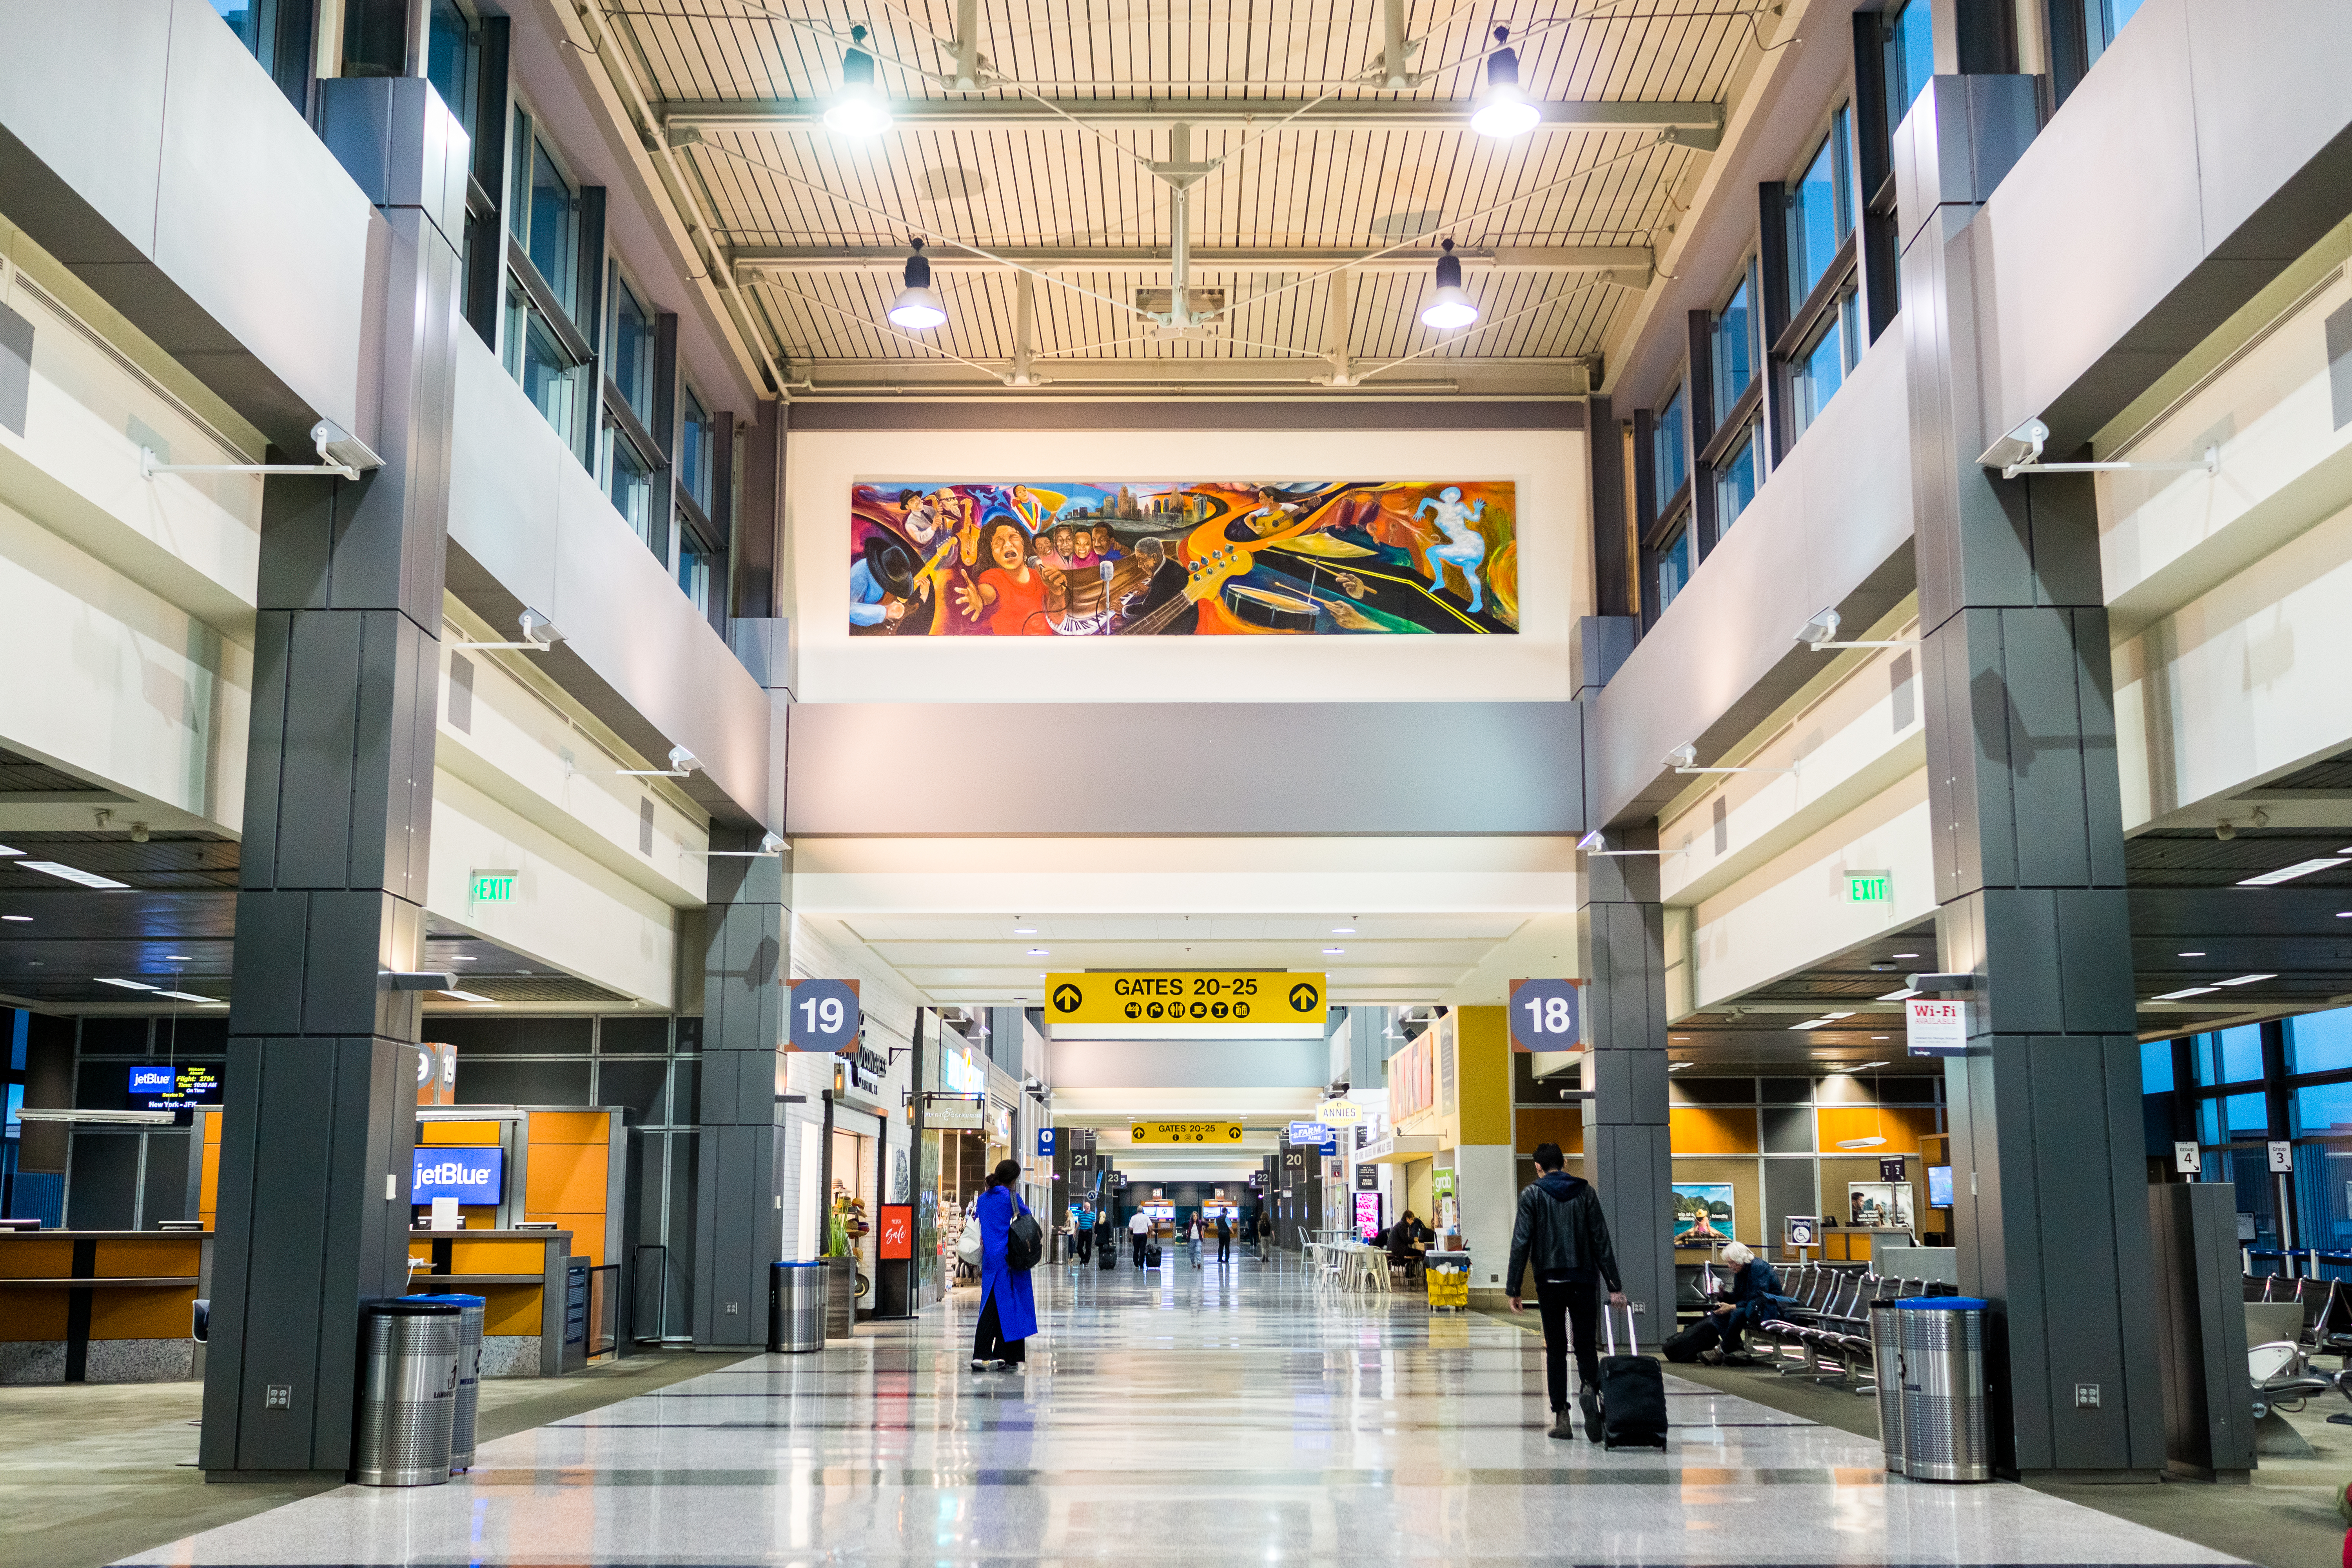 The interior of the Austin-Bergstrom International Airport. There is a high ceiling and two levels of shops and airport gates.